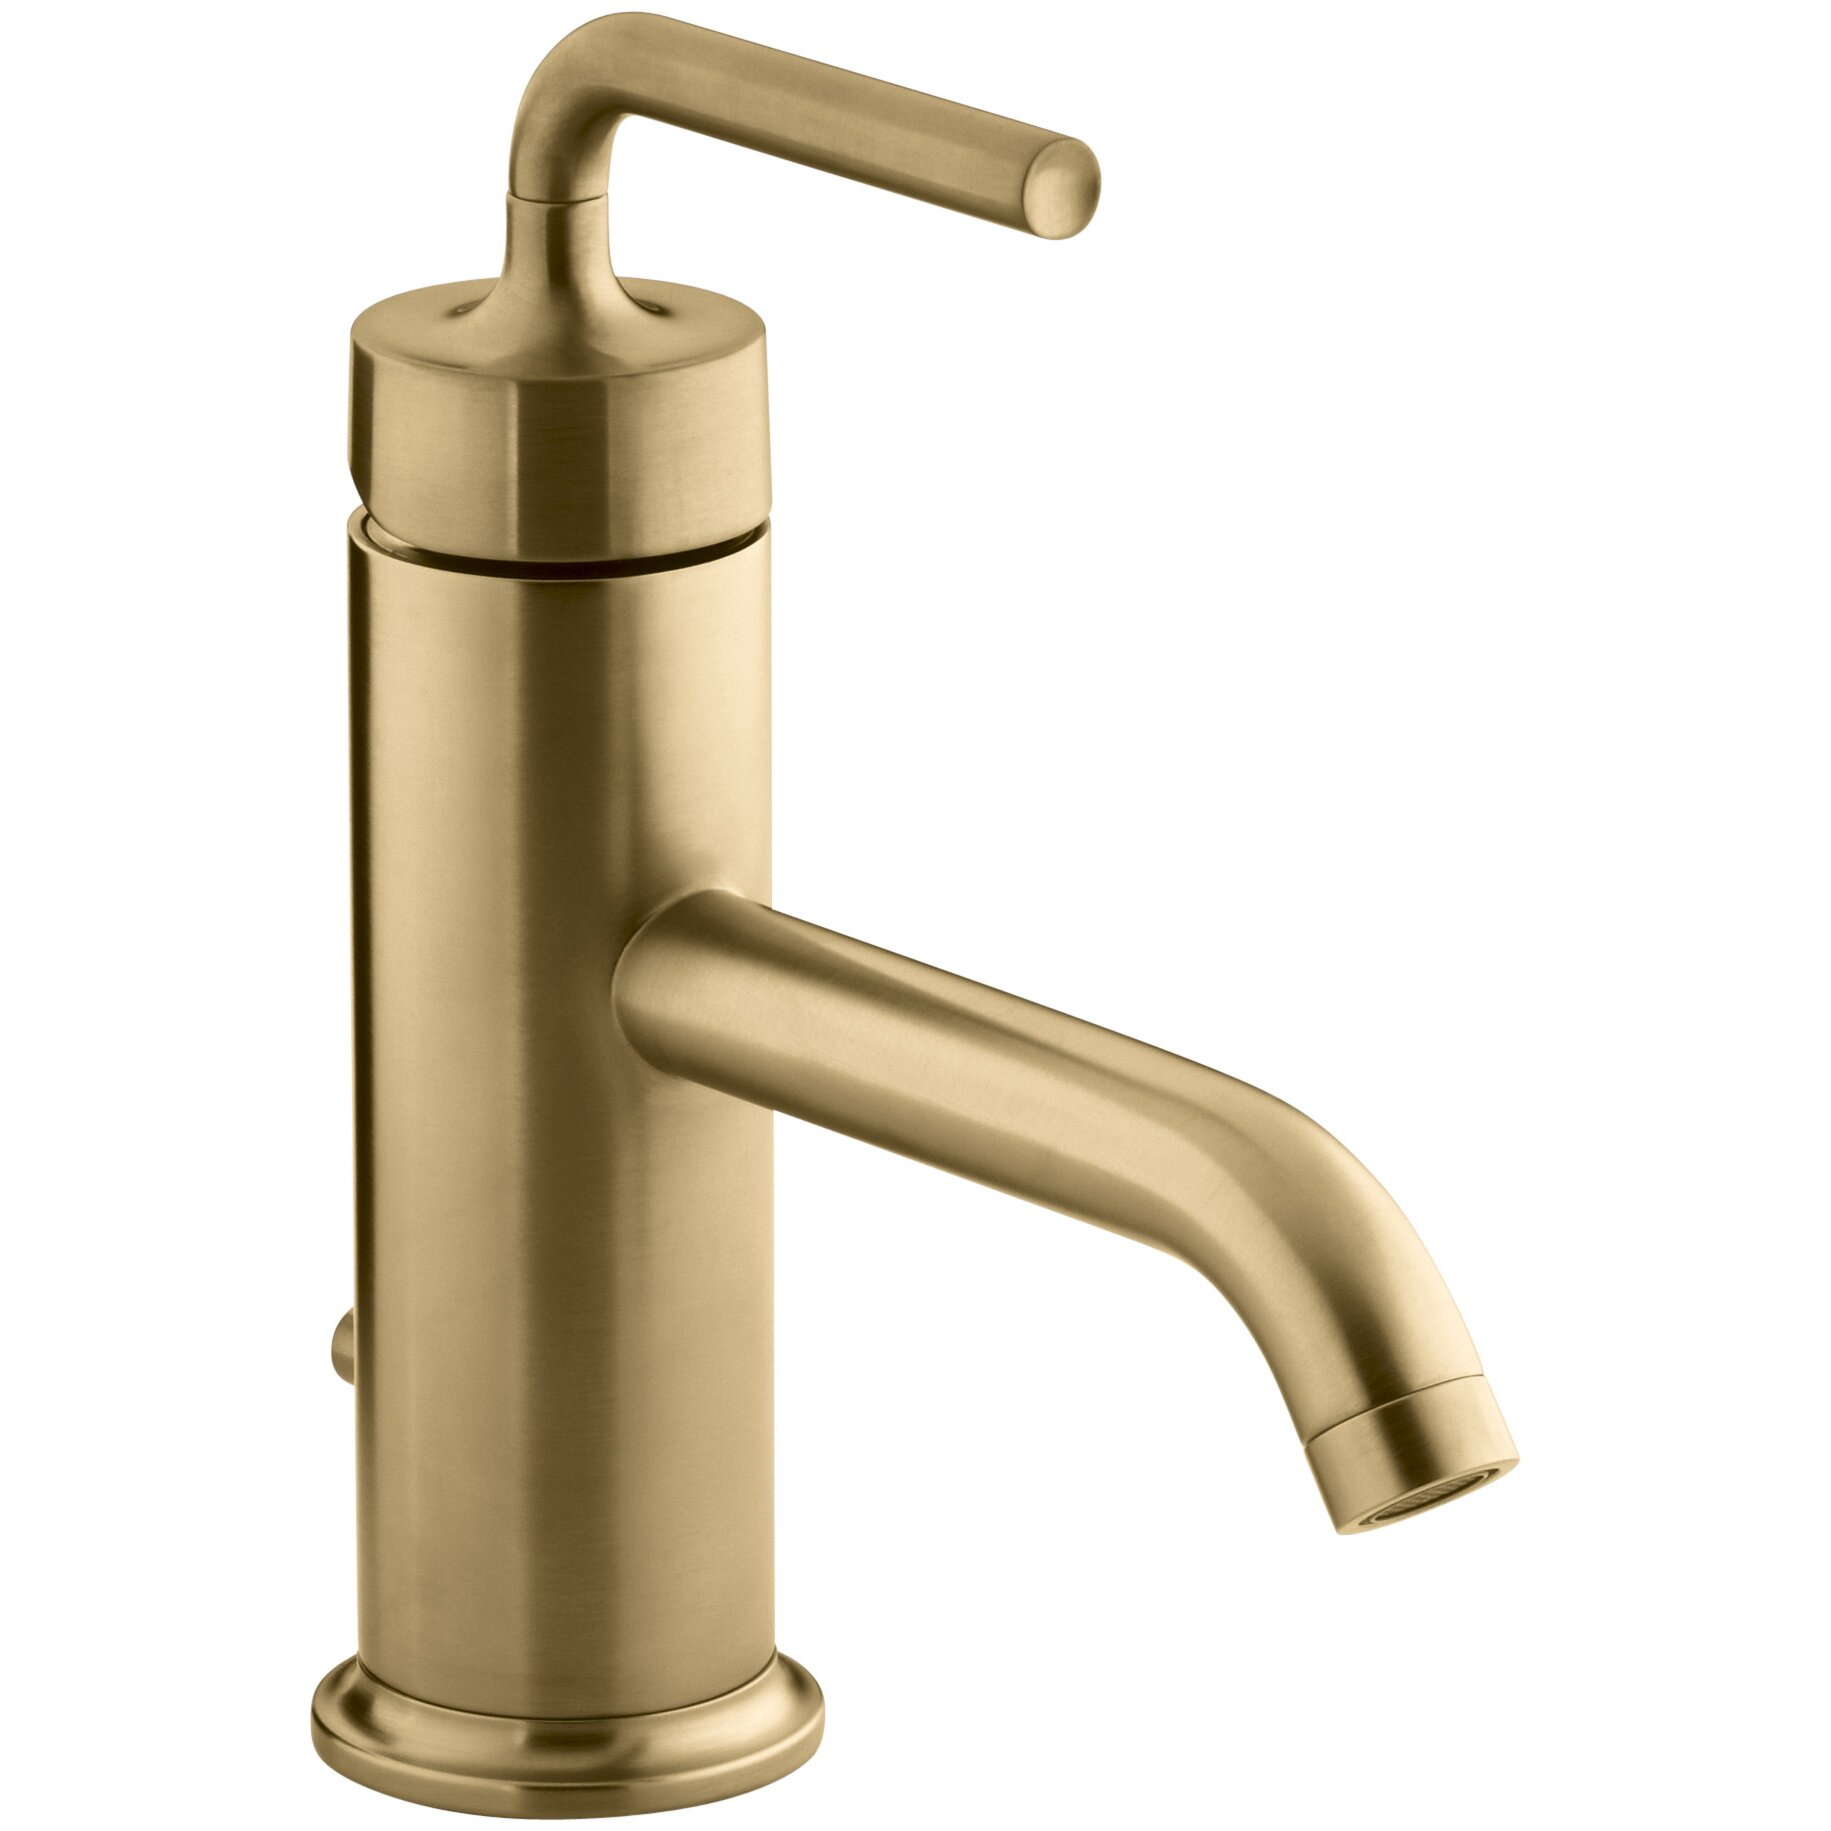 Single Lever Bathroom Faucets: Kohler Purist Single-Hole Bathroom Sink Faucet With